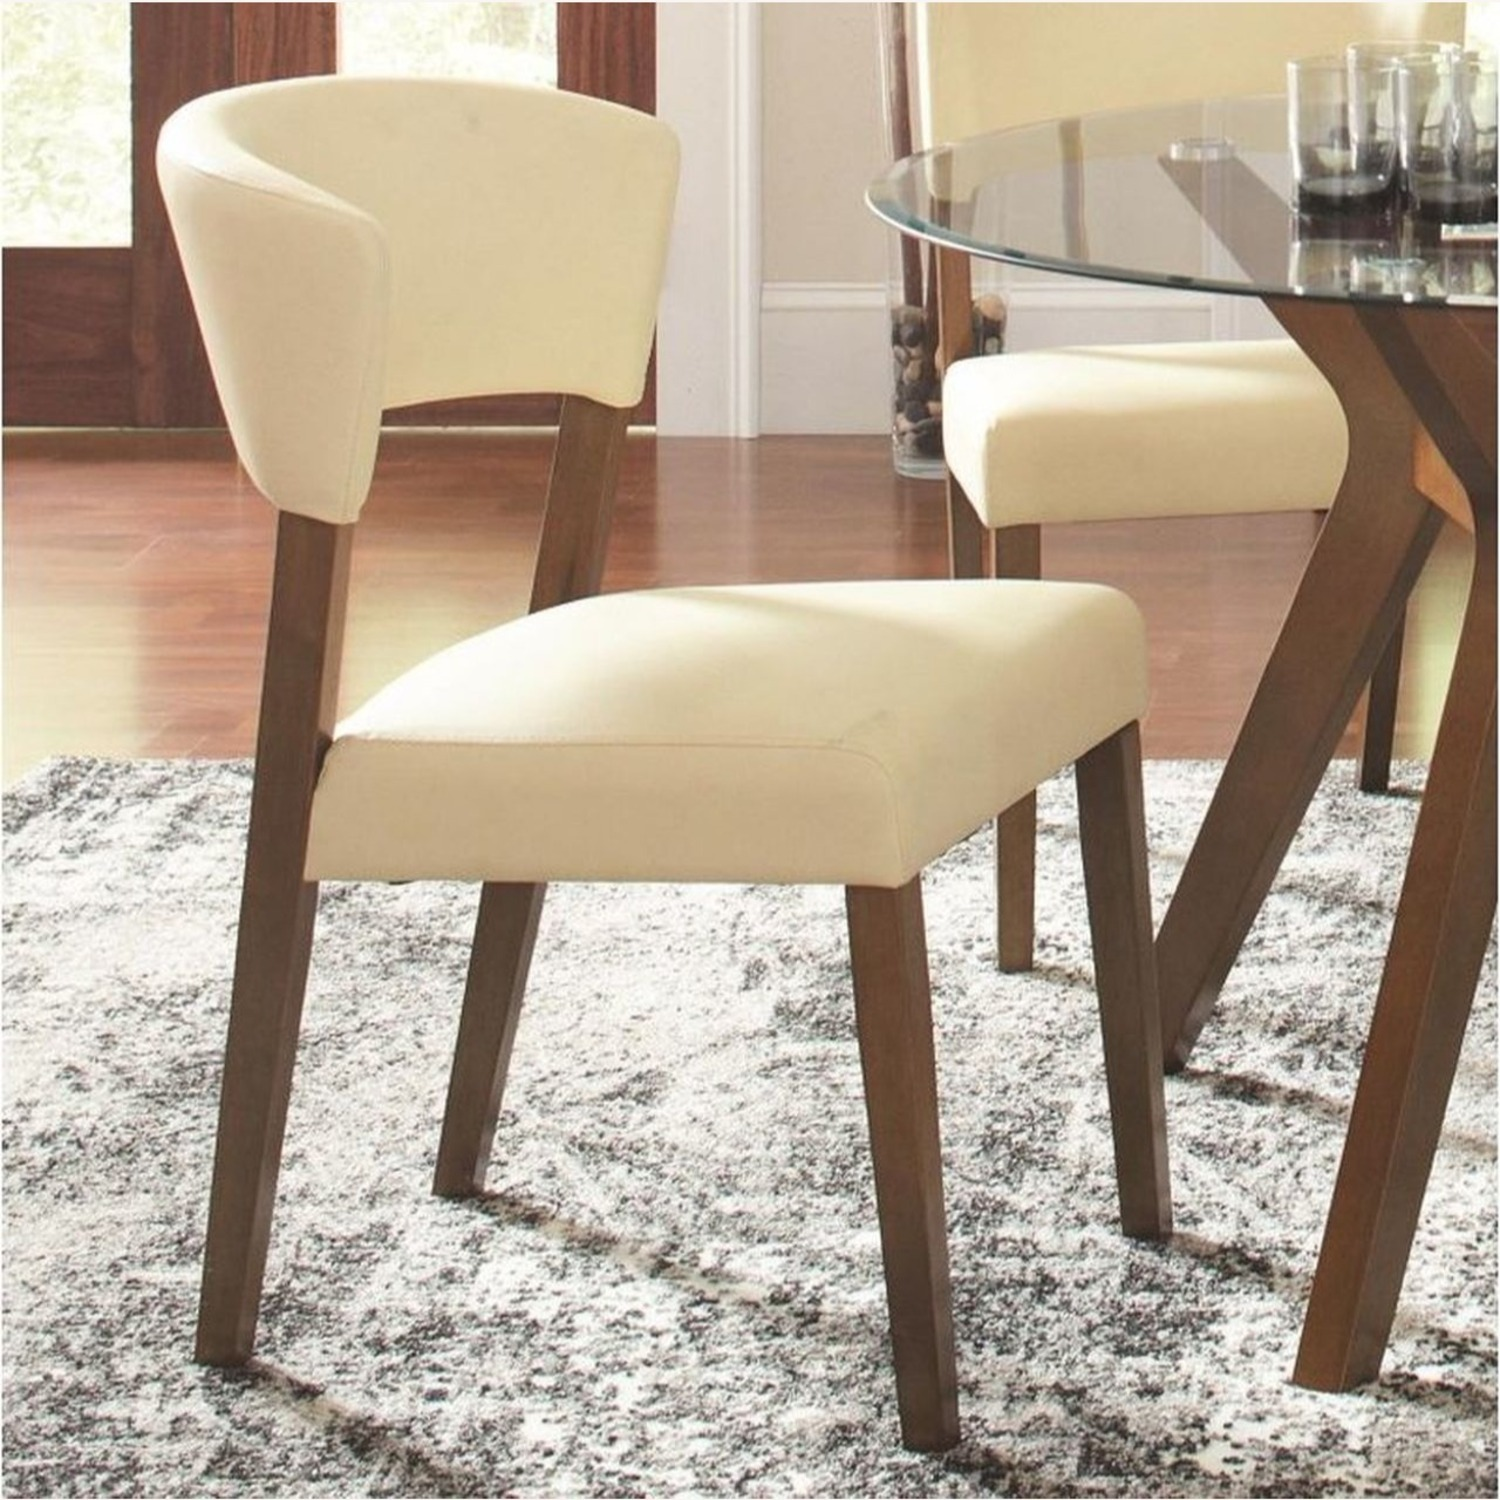 Retro Side Chair In Nutmeg & Cream Leatherette - image-3